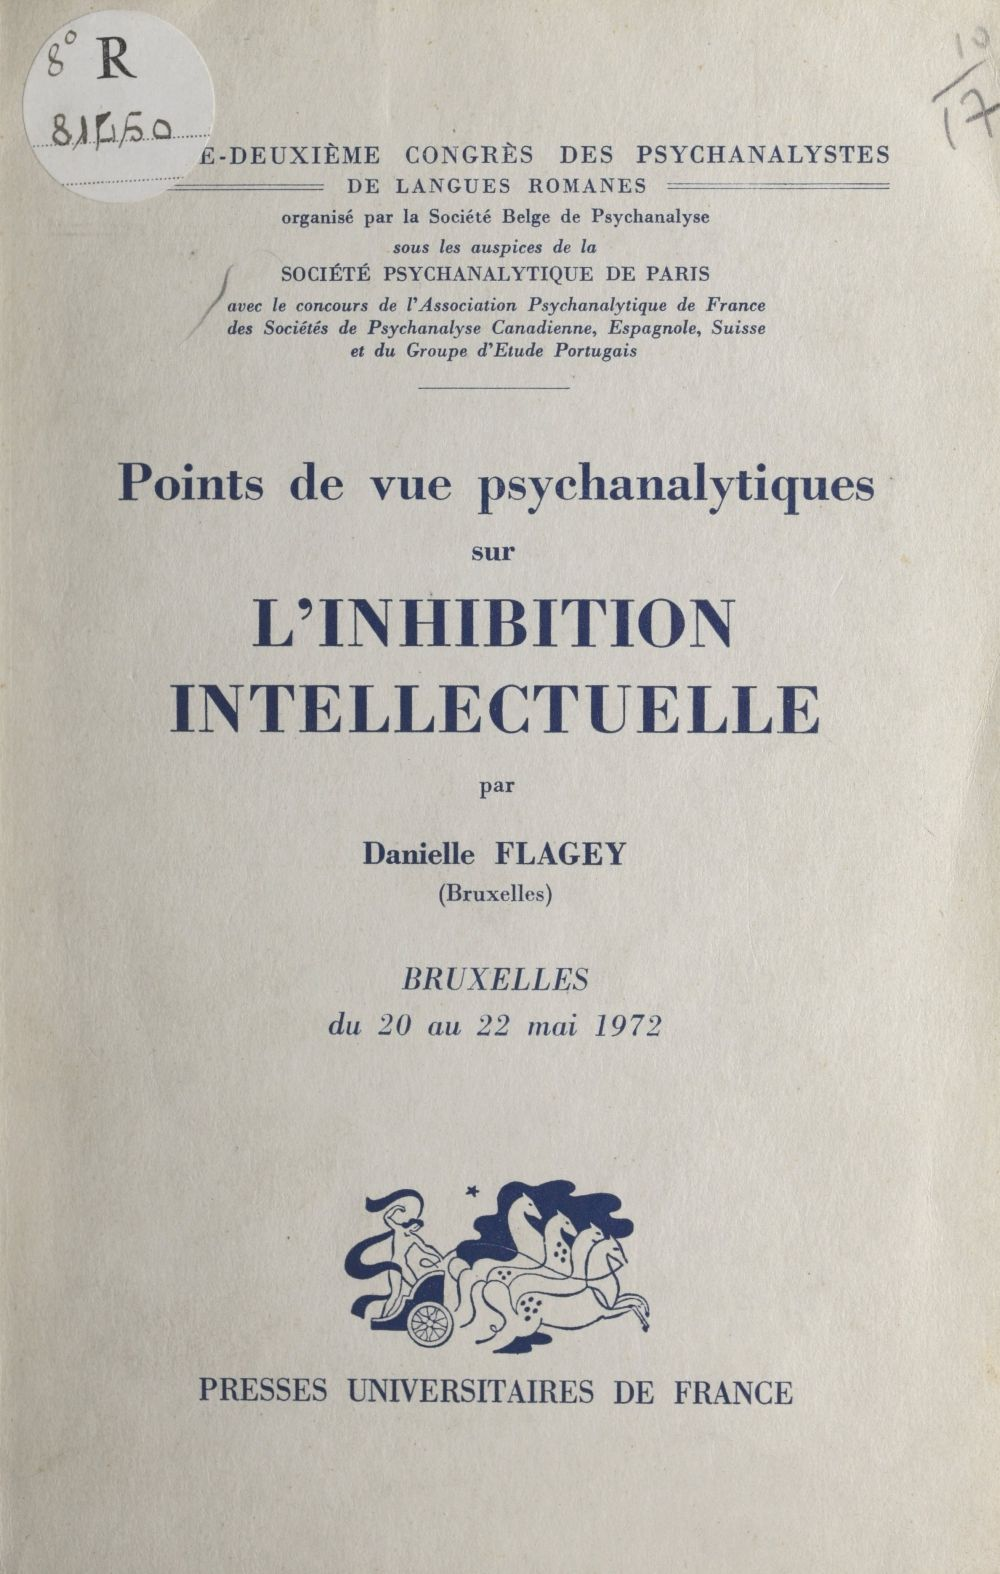 Points de vue psychanalytiques sur l'inhibition intellectuelle